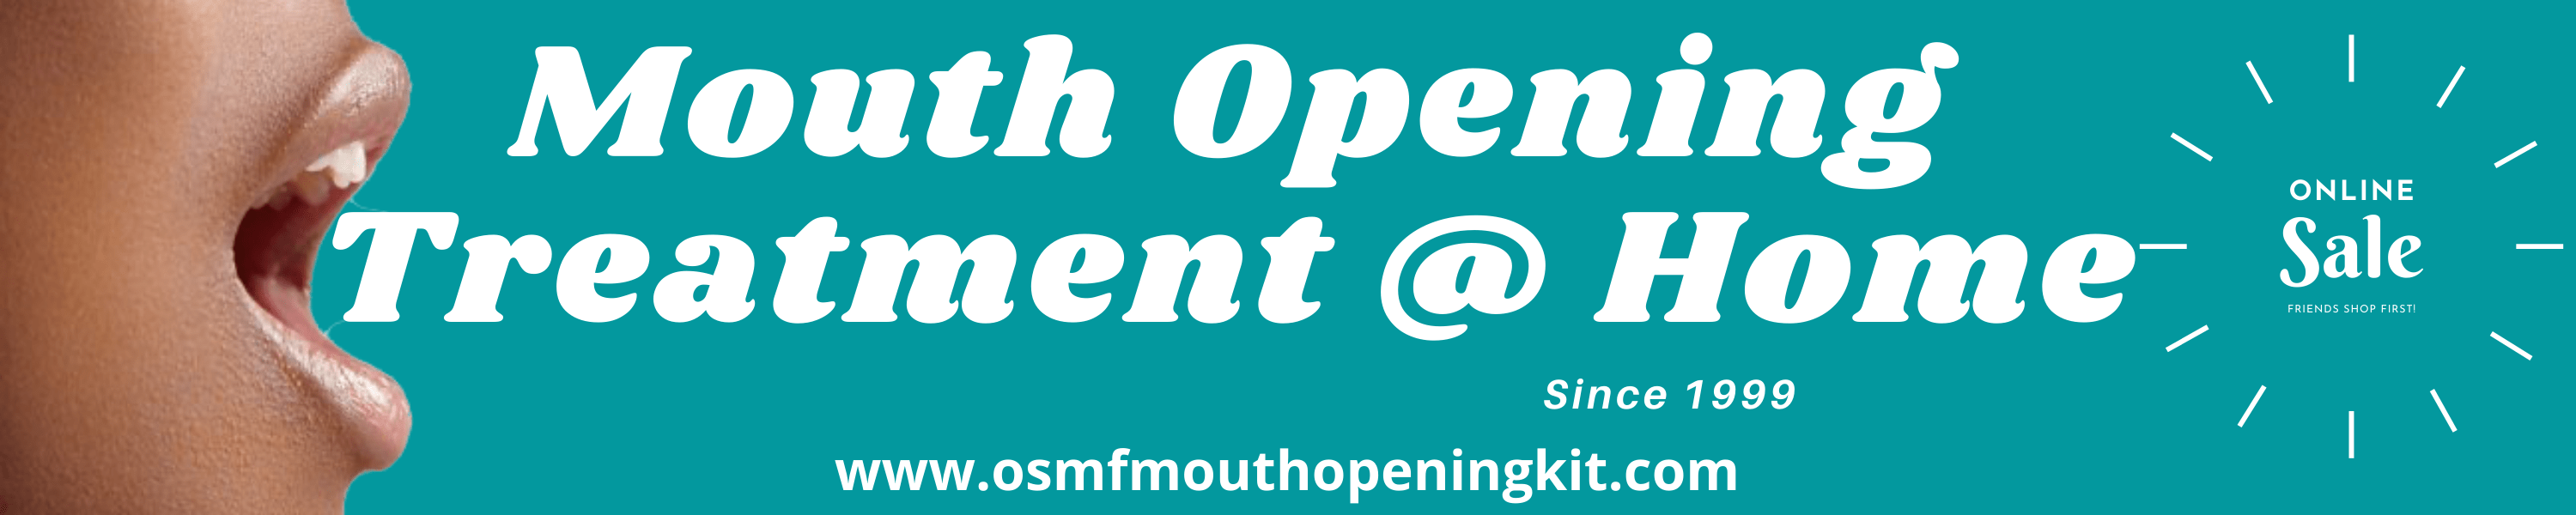 Contact Us Mouth Opening Kit Treatment at Home brand store India